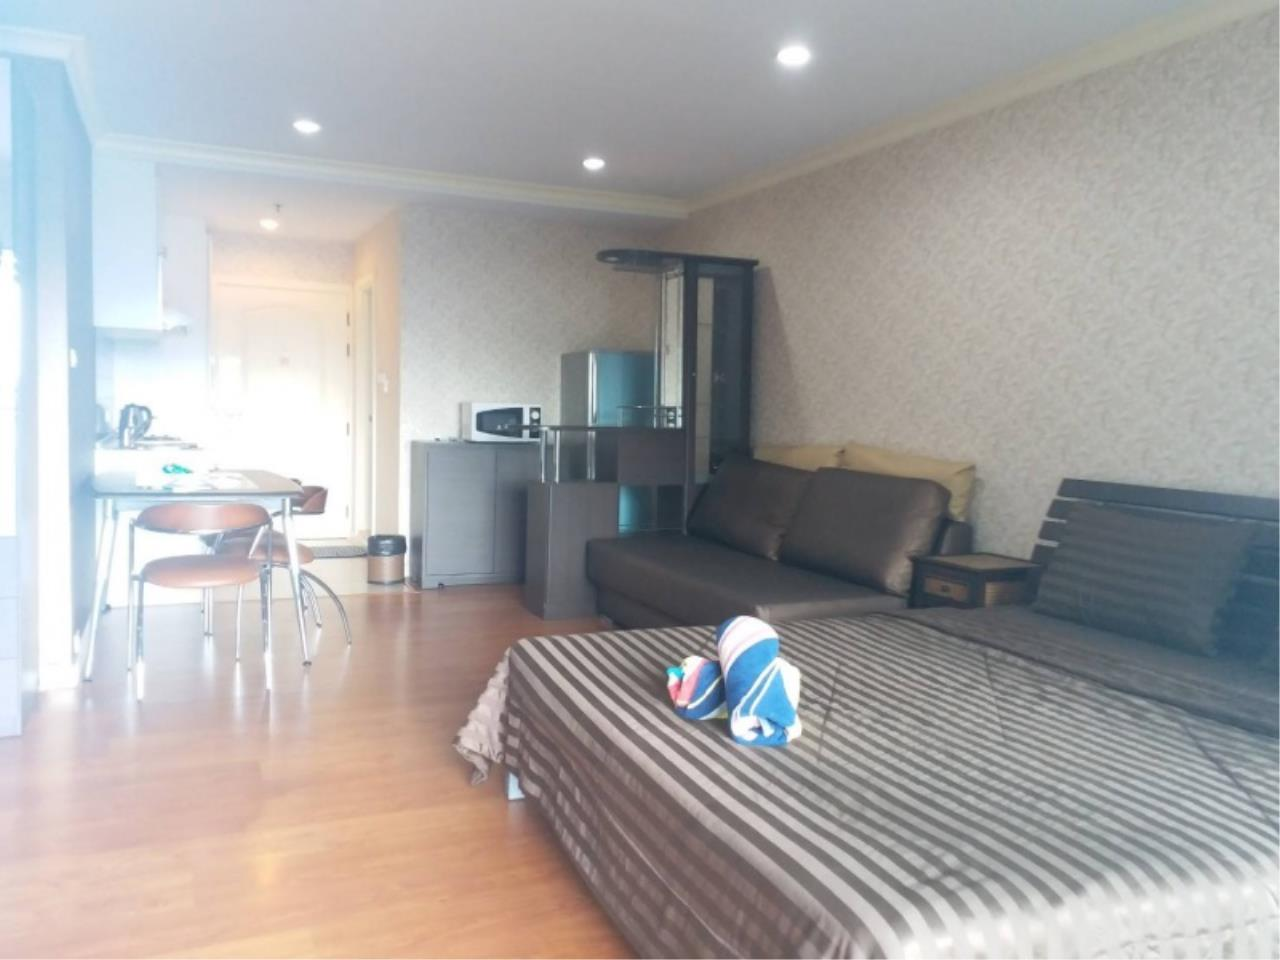 Century21 Skylux Agency's Grand Park View / Condo For Rent / 1 Bedroom / 42 SQM / BTS Asok / Bangkok 1